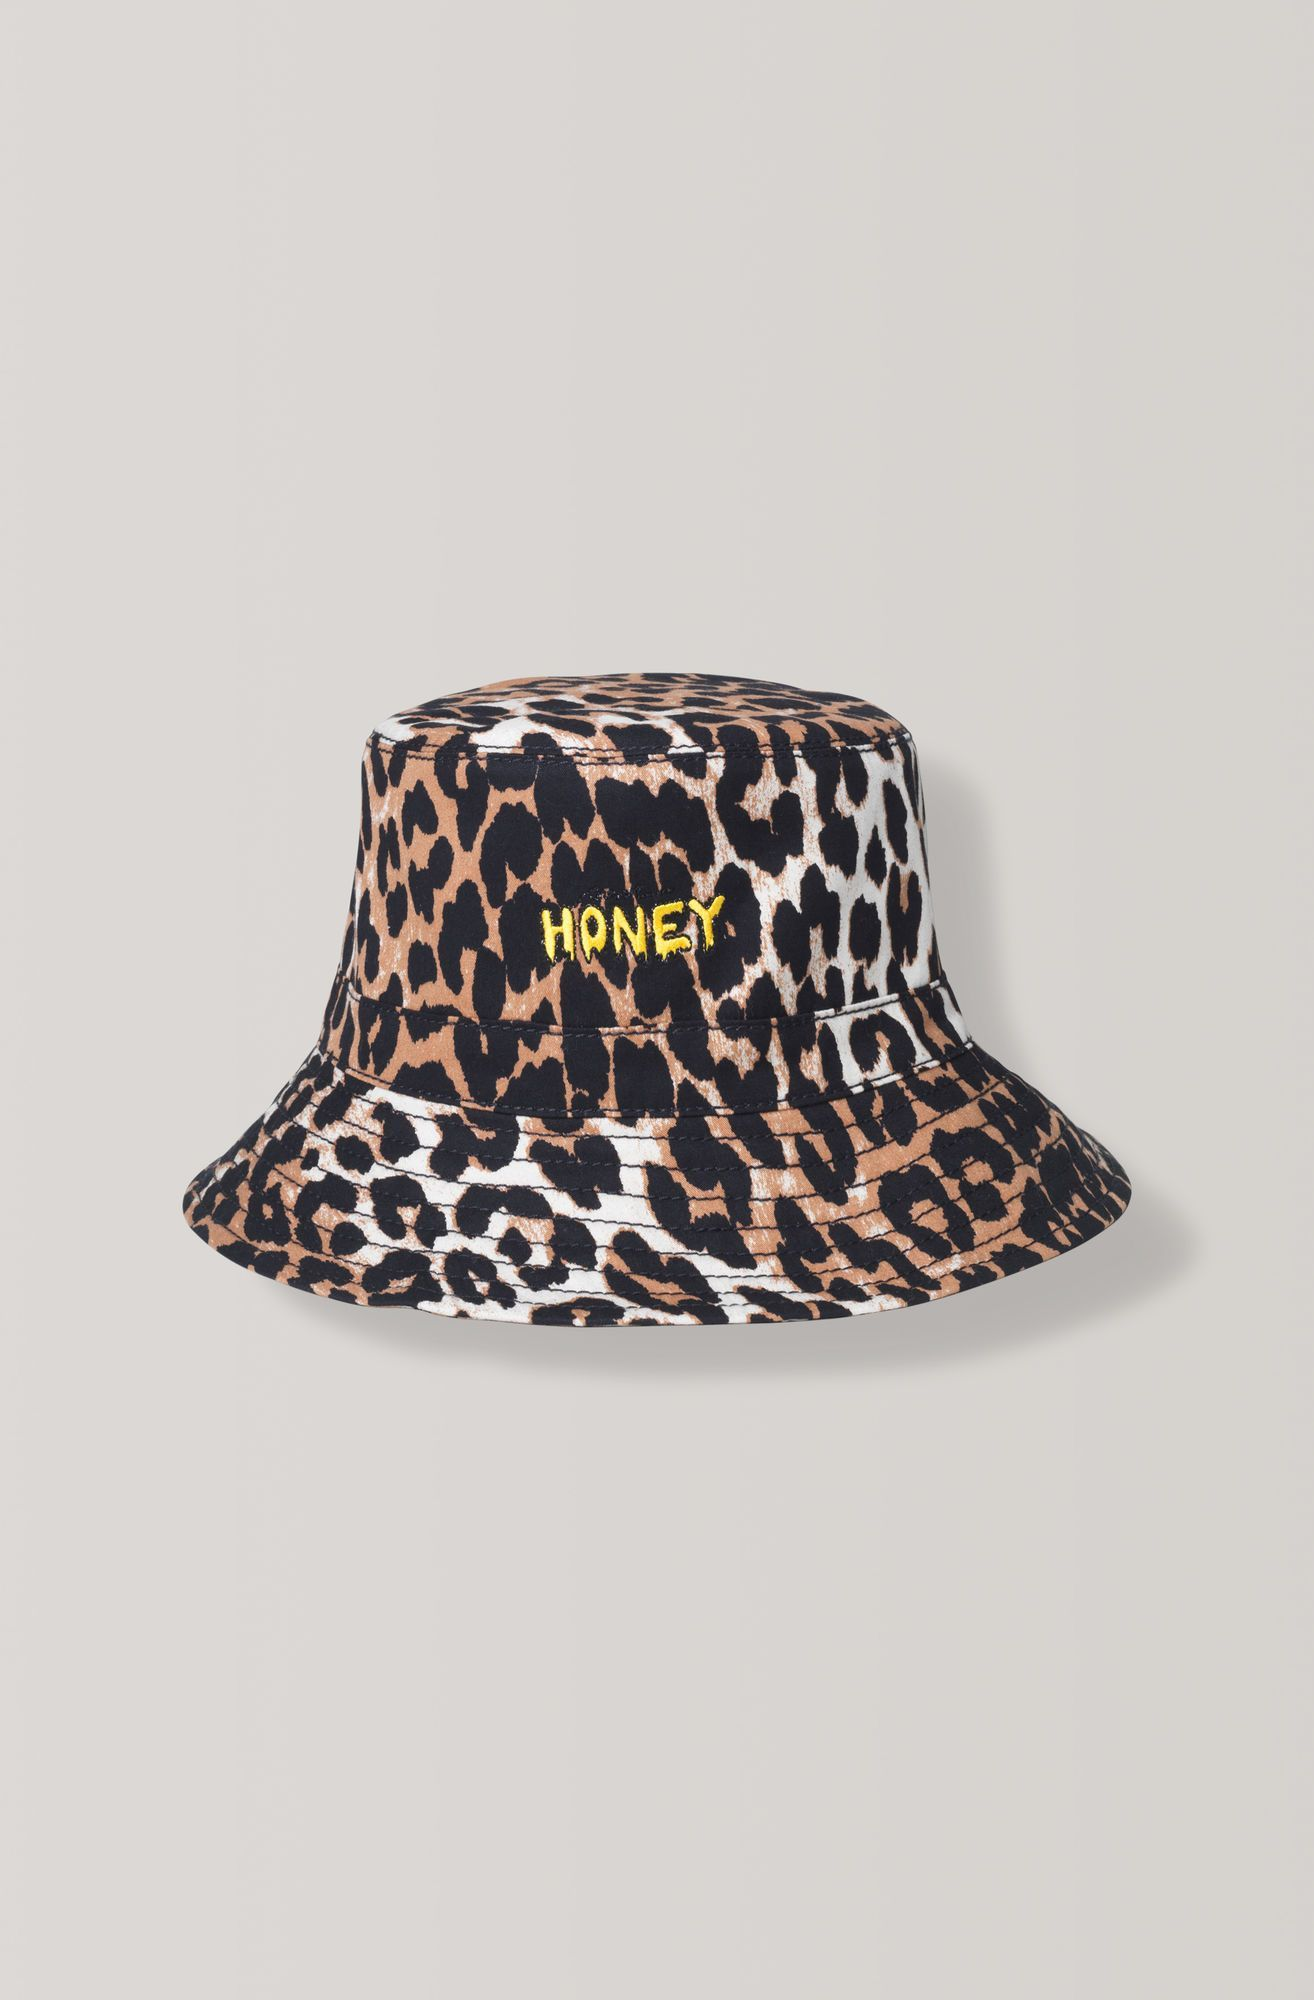 c9ab9db7551 Ganni HONEY bucket hat